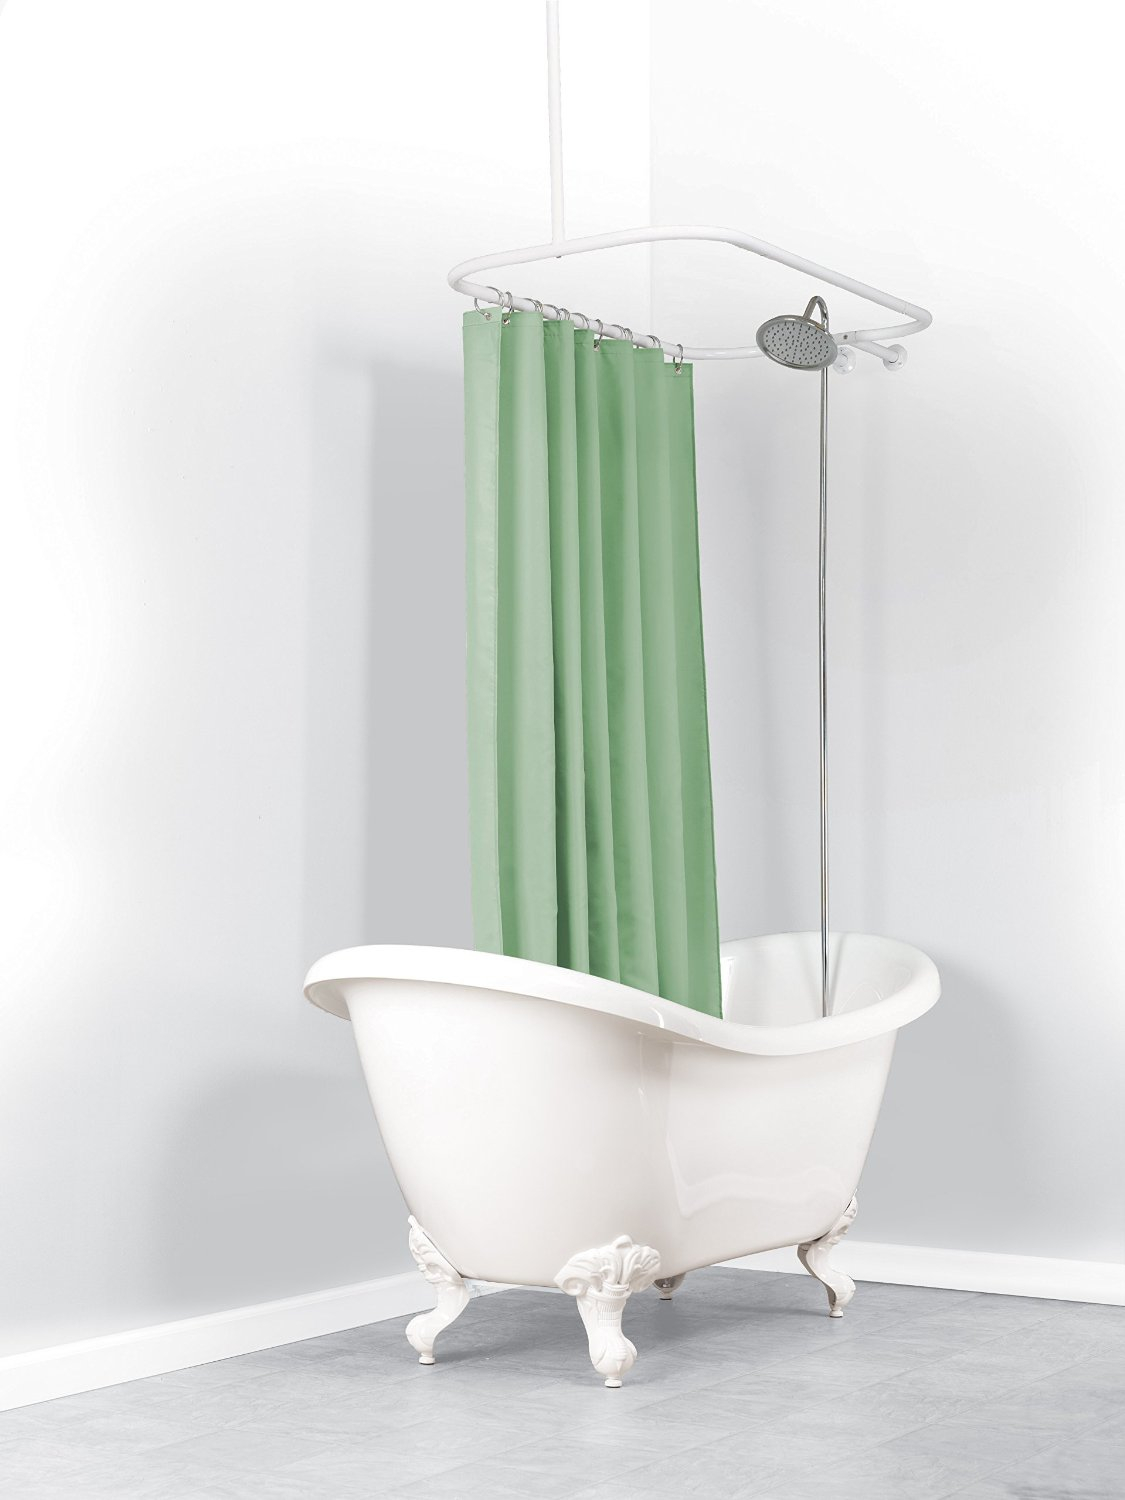 Catchy Ideas For Oval Shower Curtain Rod Design Exquisite Design pertaining to sizing 1125 X 1500